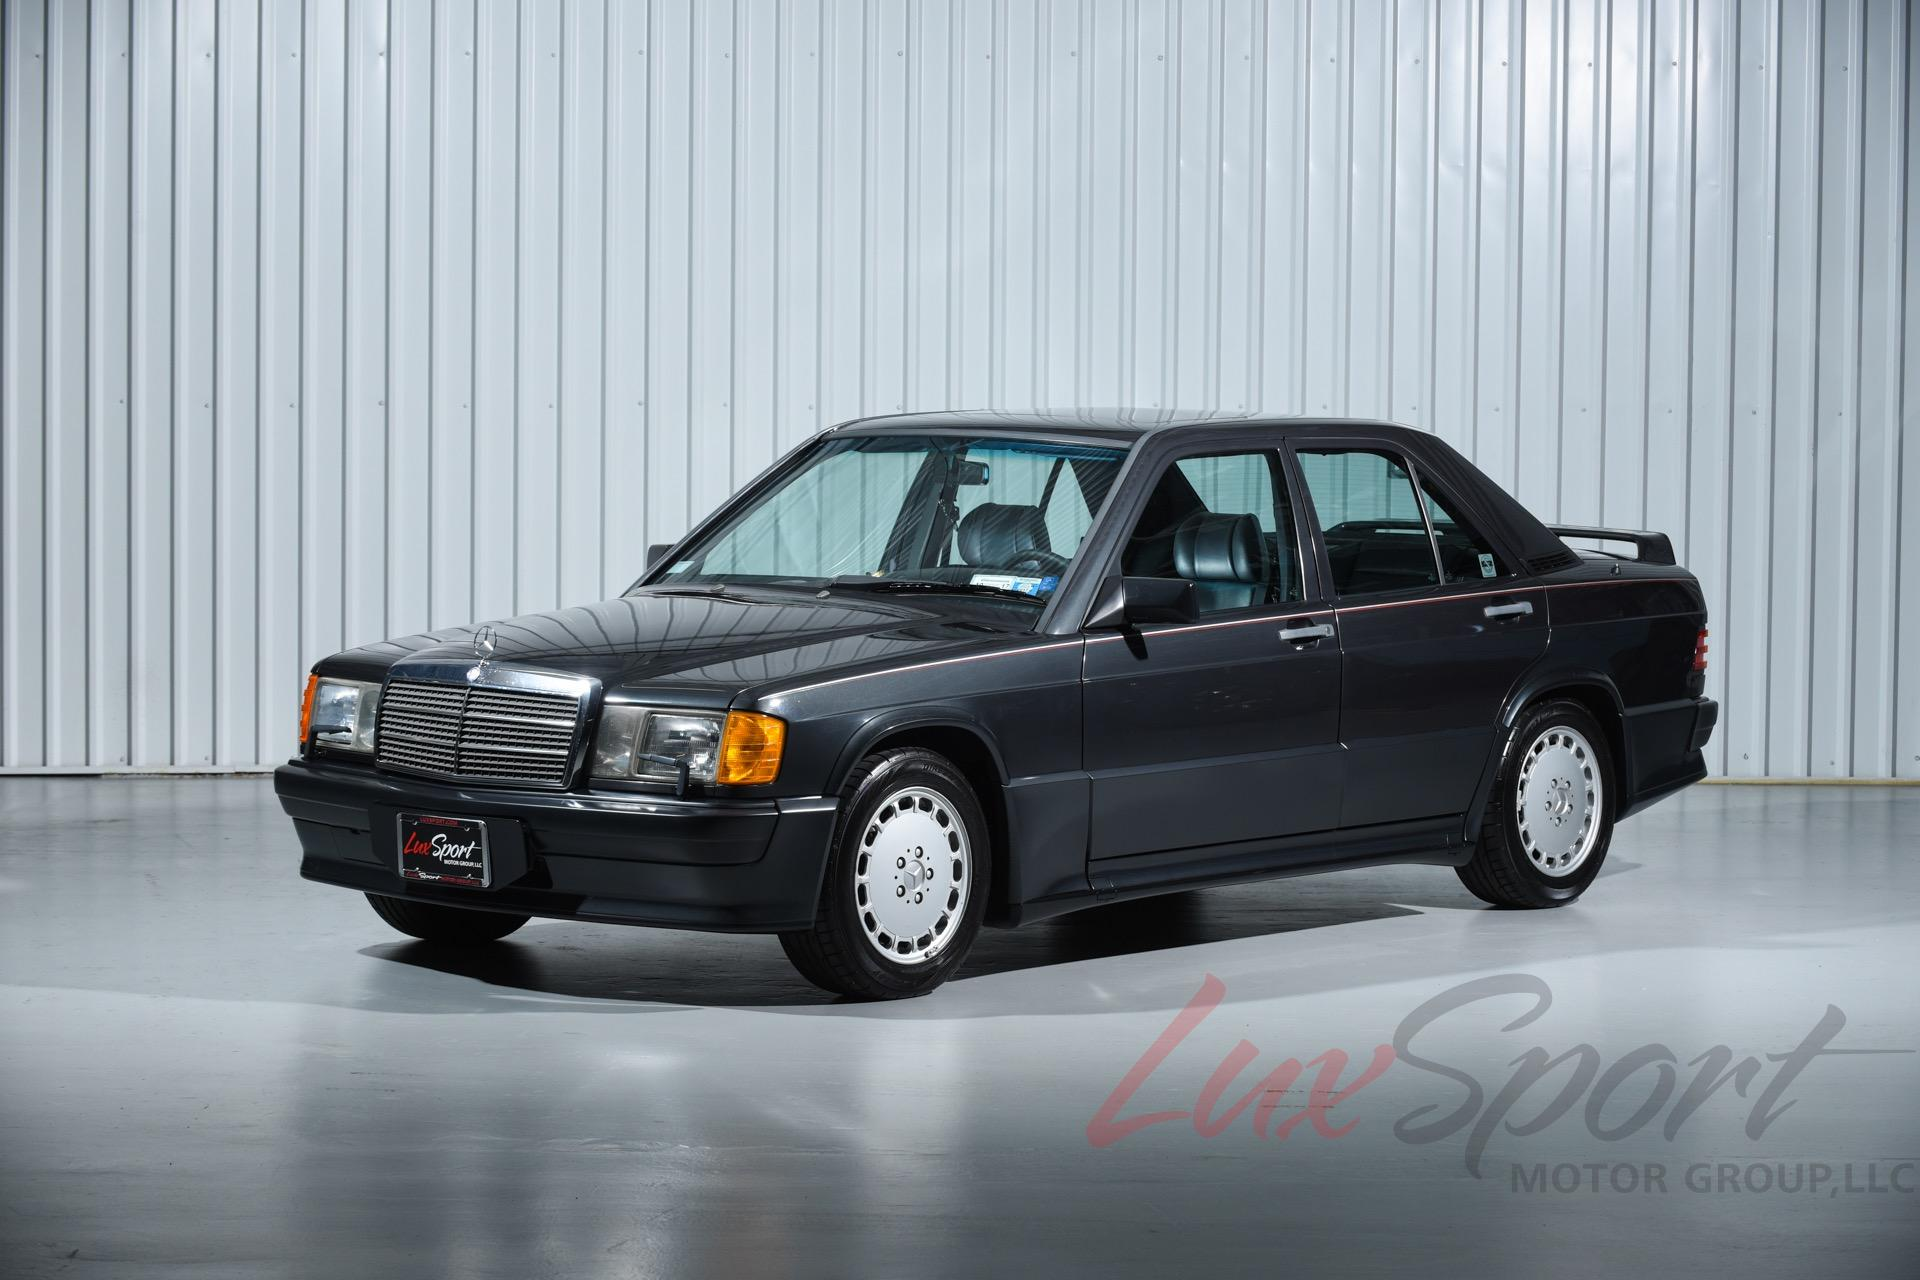 1987 mercedes benz 190 e 2 3 16v used mercedes benz 190 for Mercedes benz 190 for sale